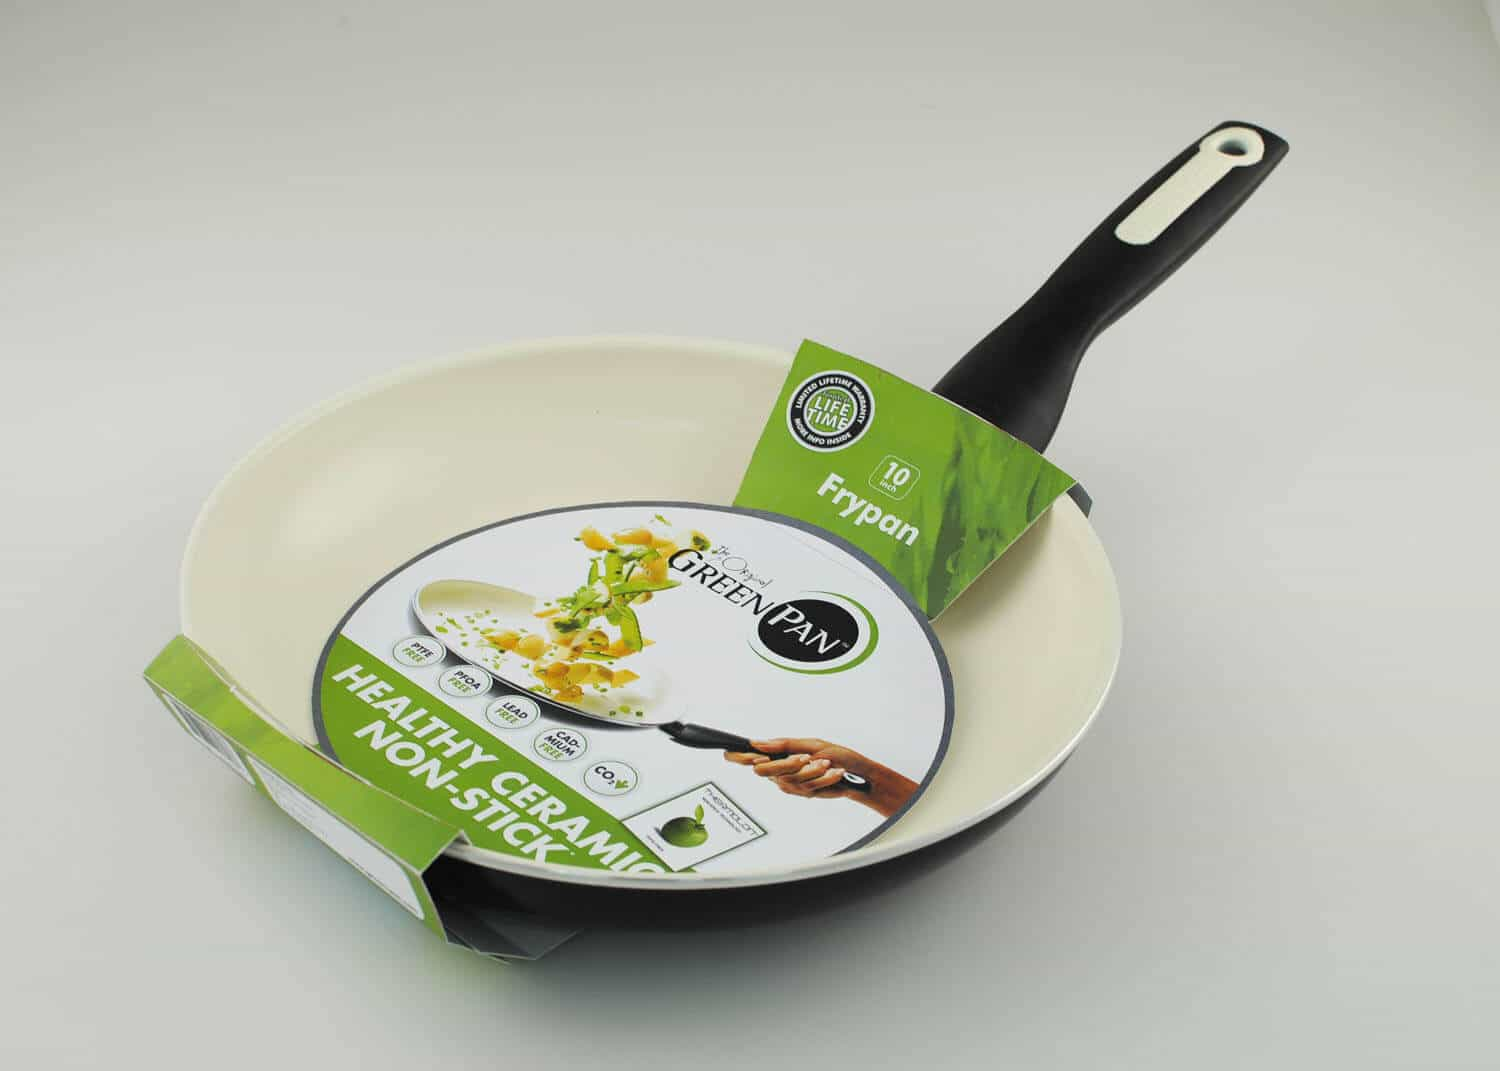 Giveaway Rio 10 Inch Ceramic Non Stick Open Fry Pan By